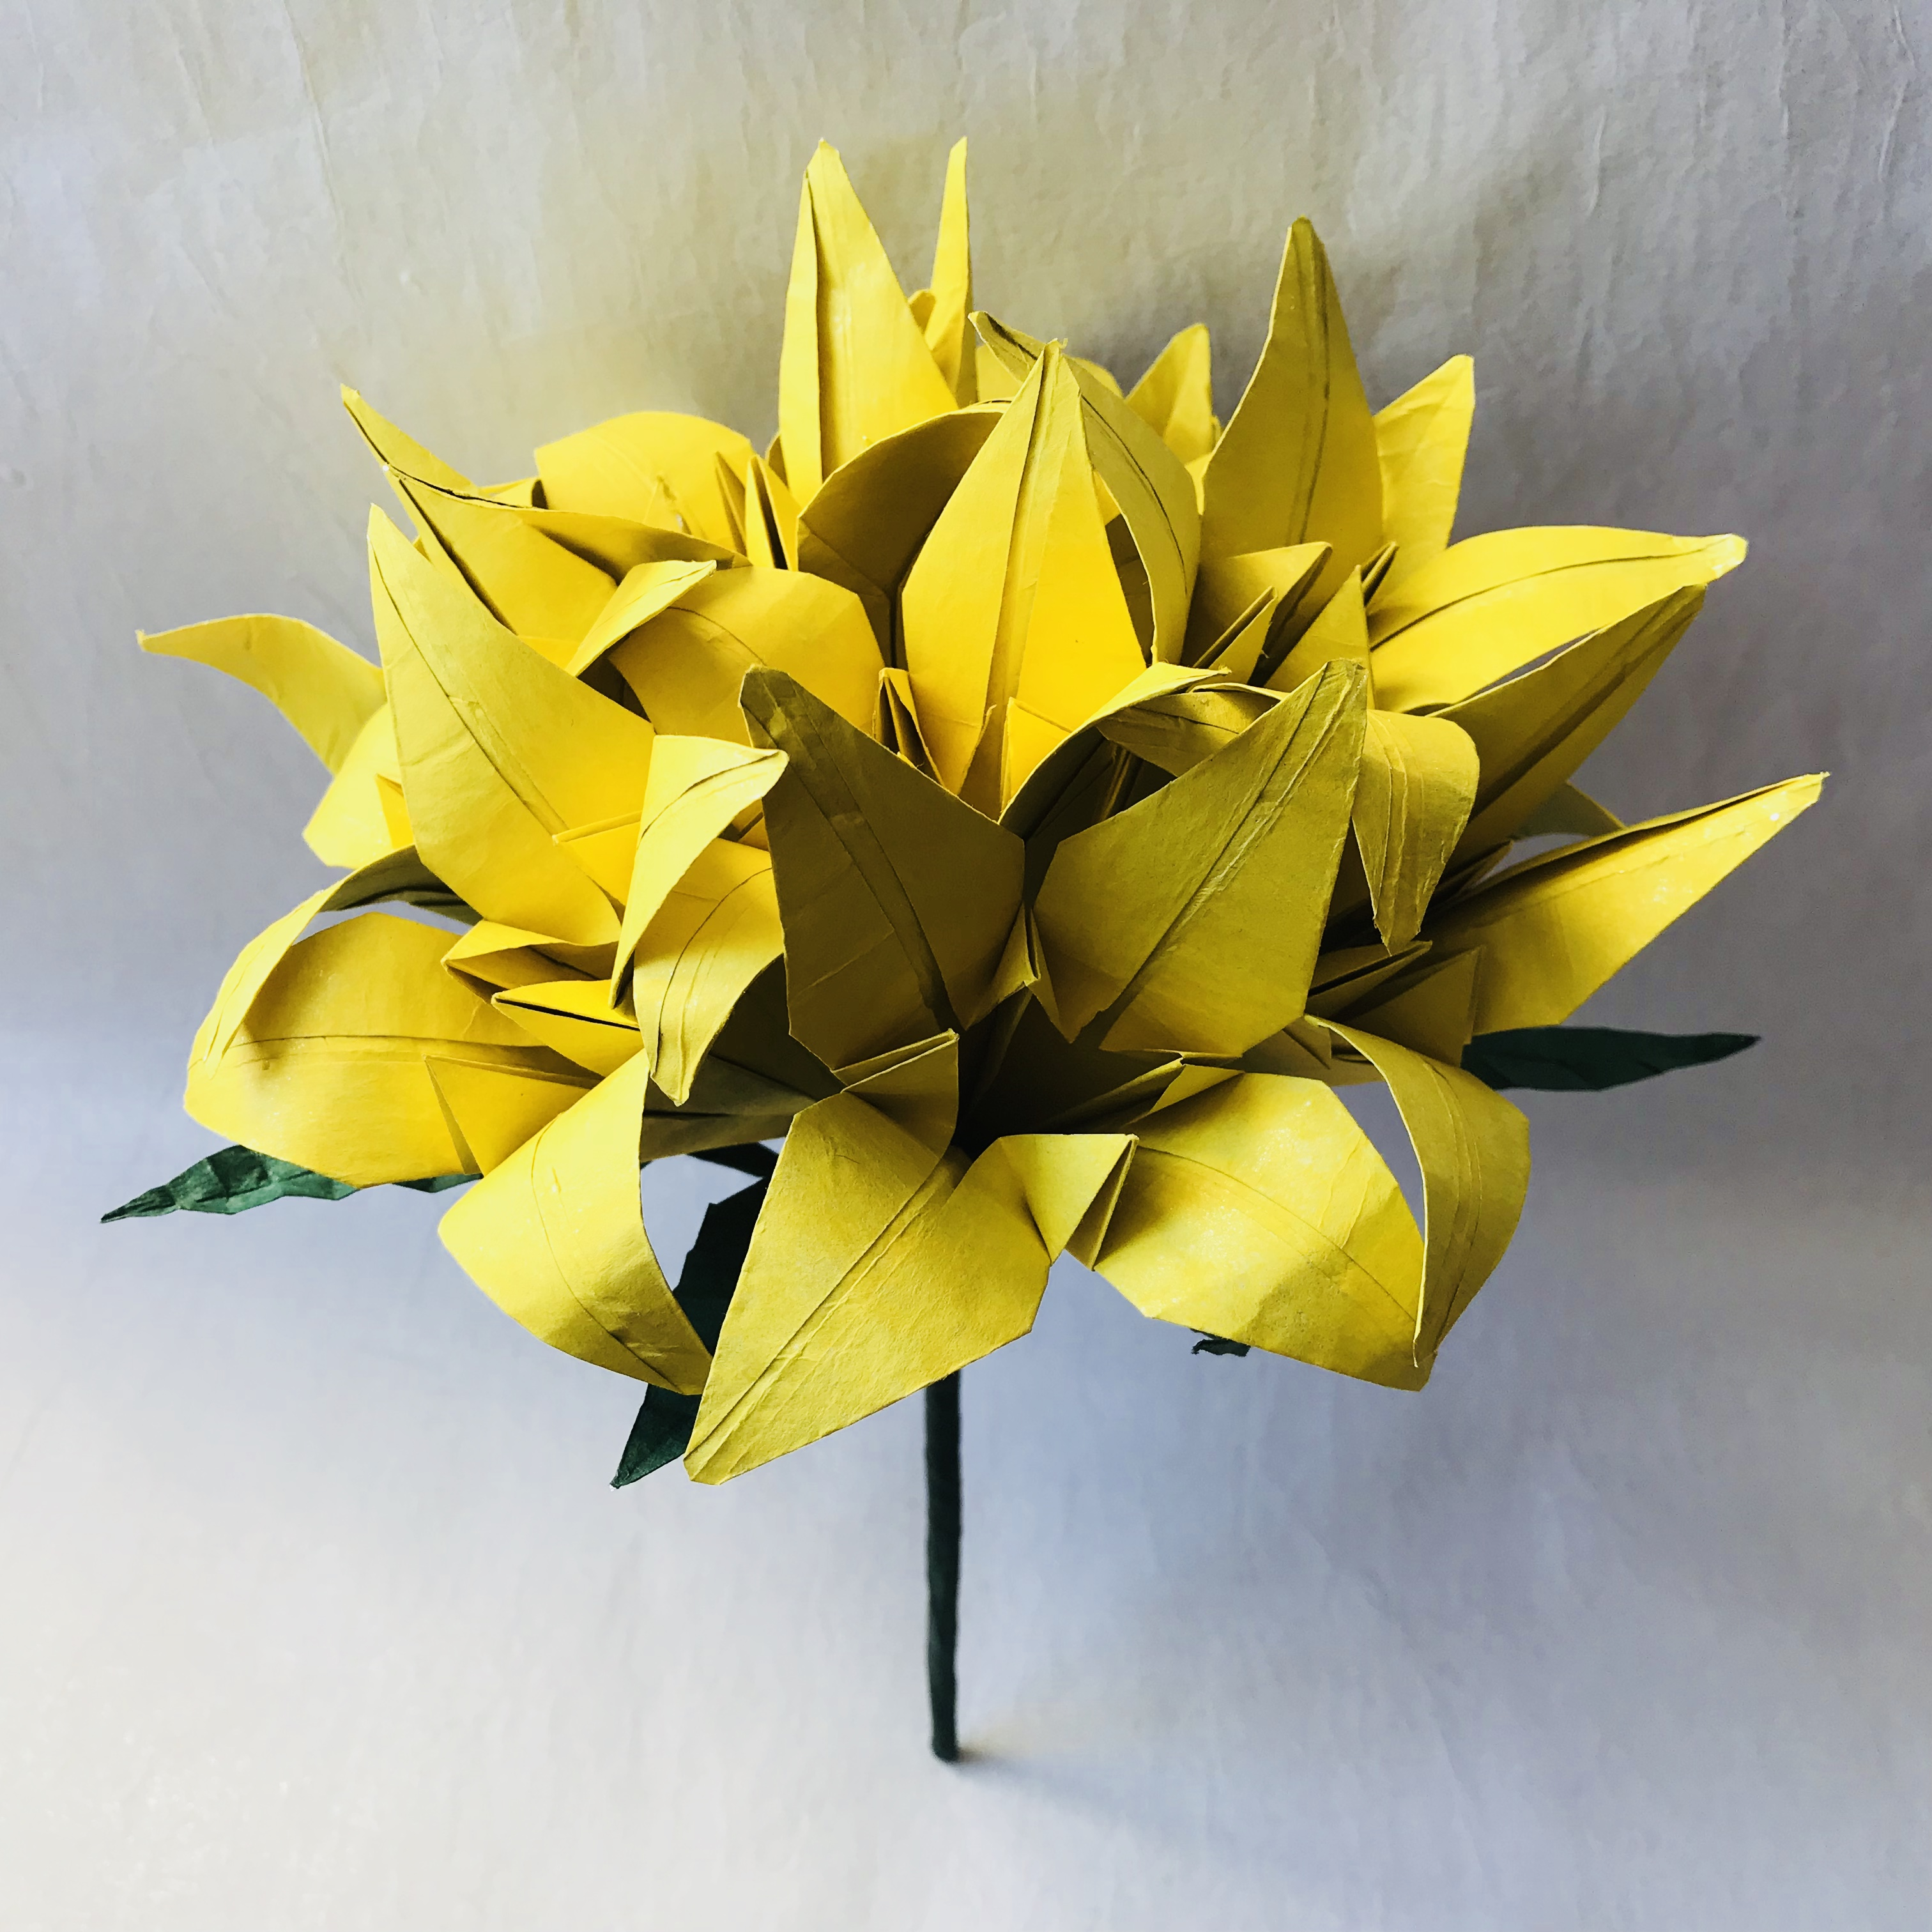 Flower Bouquet – Lilies – Taro's Origami Studio E-learning ... - photo#24